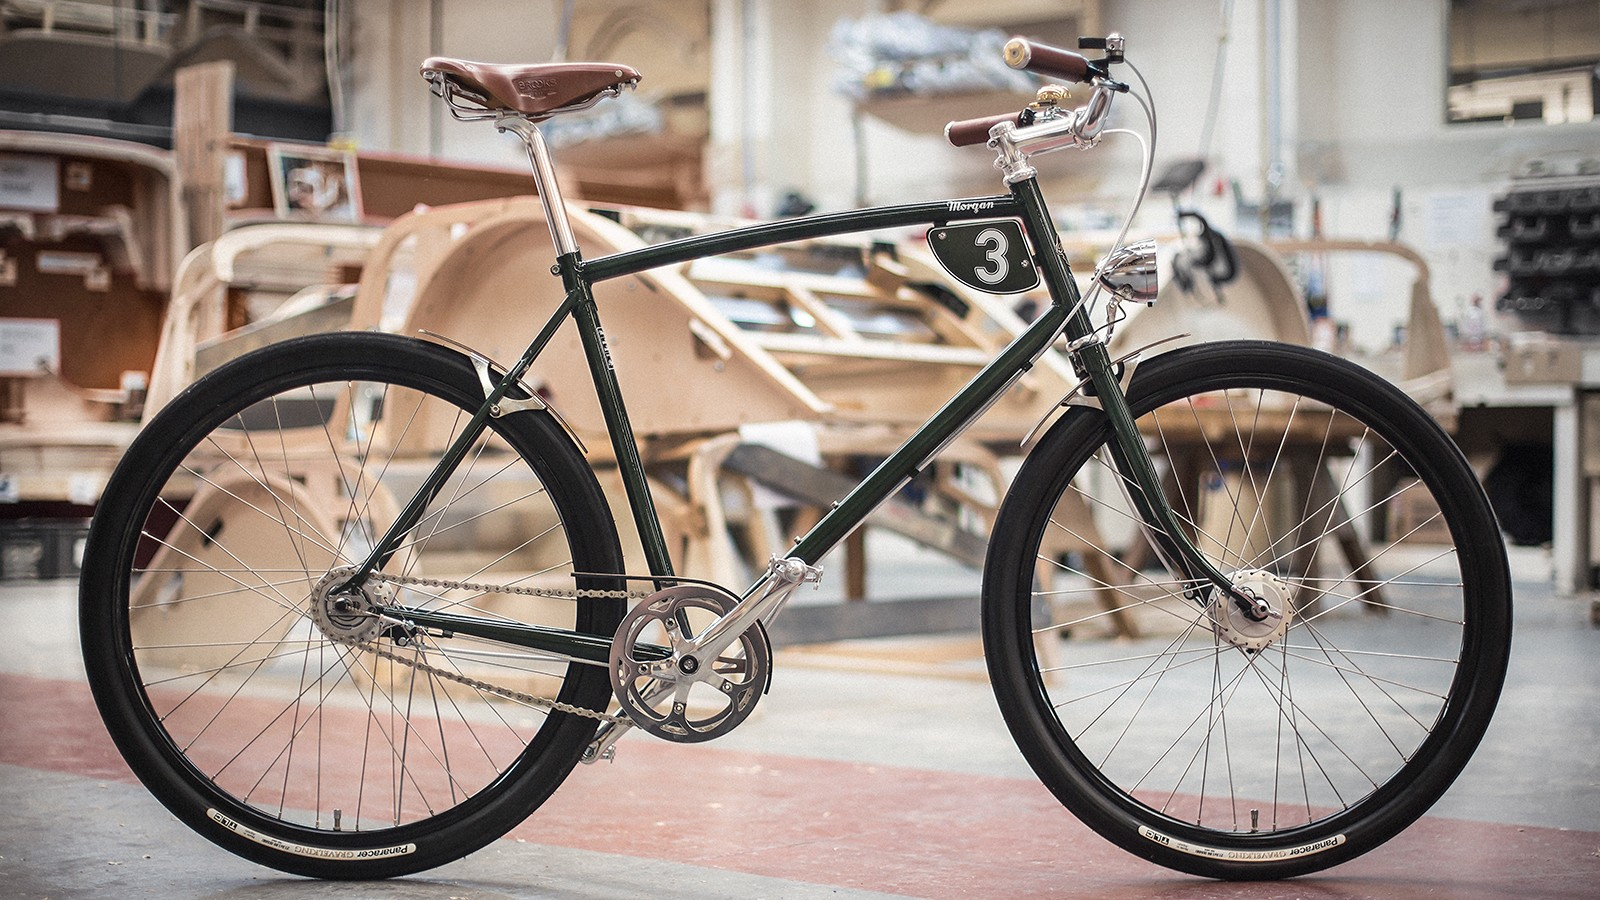 749ba925982 The British Racing Green Pashley-Morgan 3 features a Reynolds 631 chromoly  frame and a